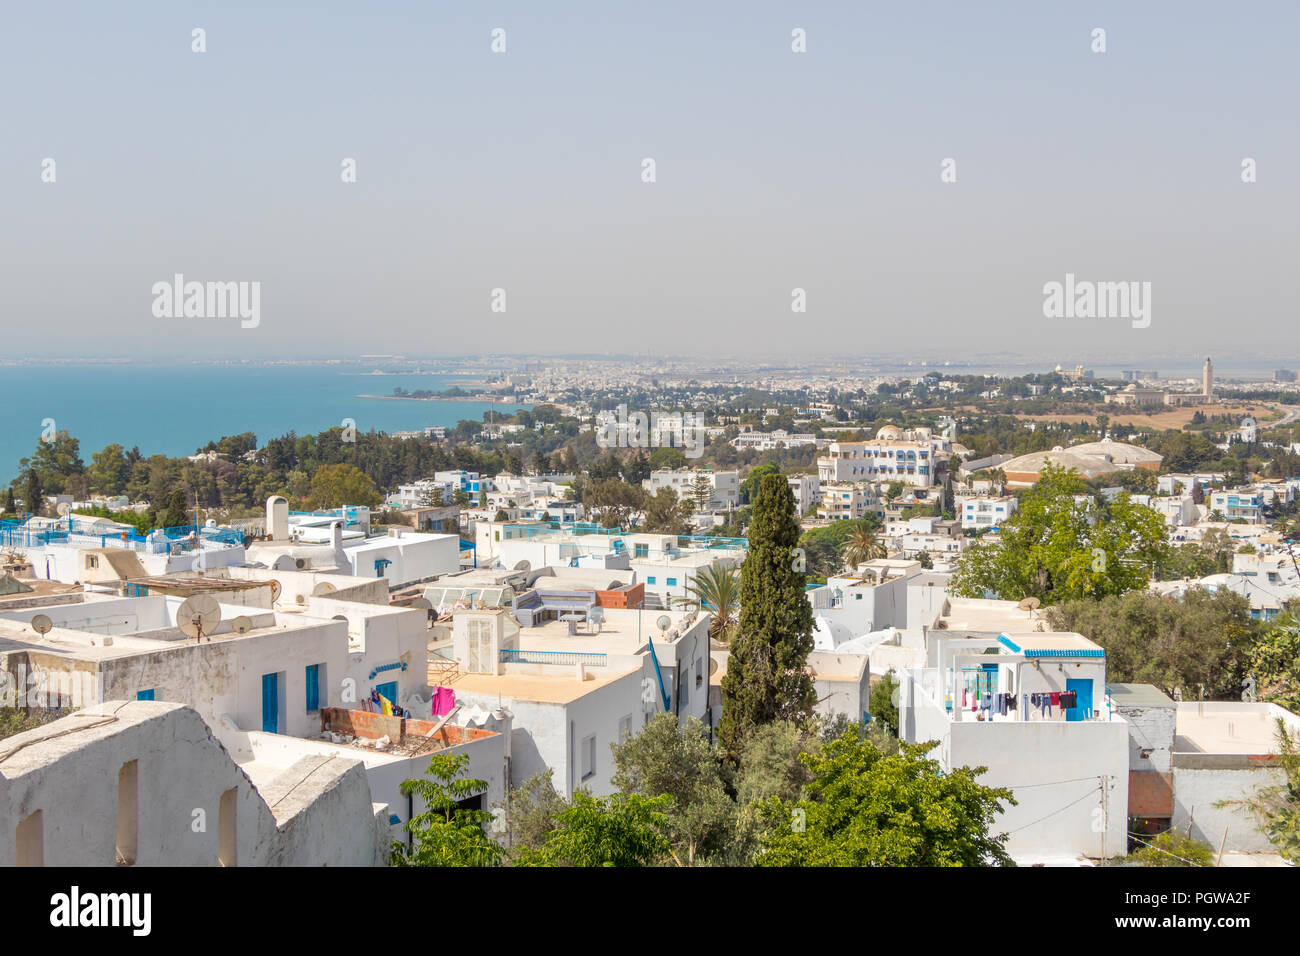 Cityscape with typical white blue colored houses in Sidi Bou Said,Tunisia, Africa Stock Photo